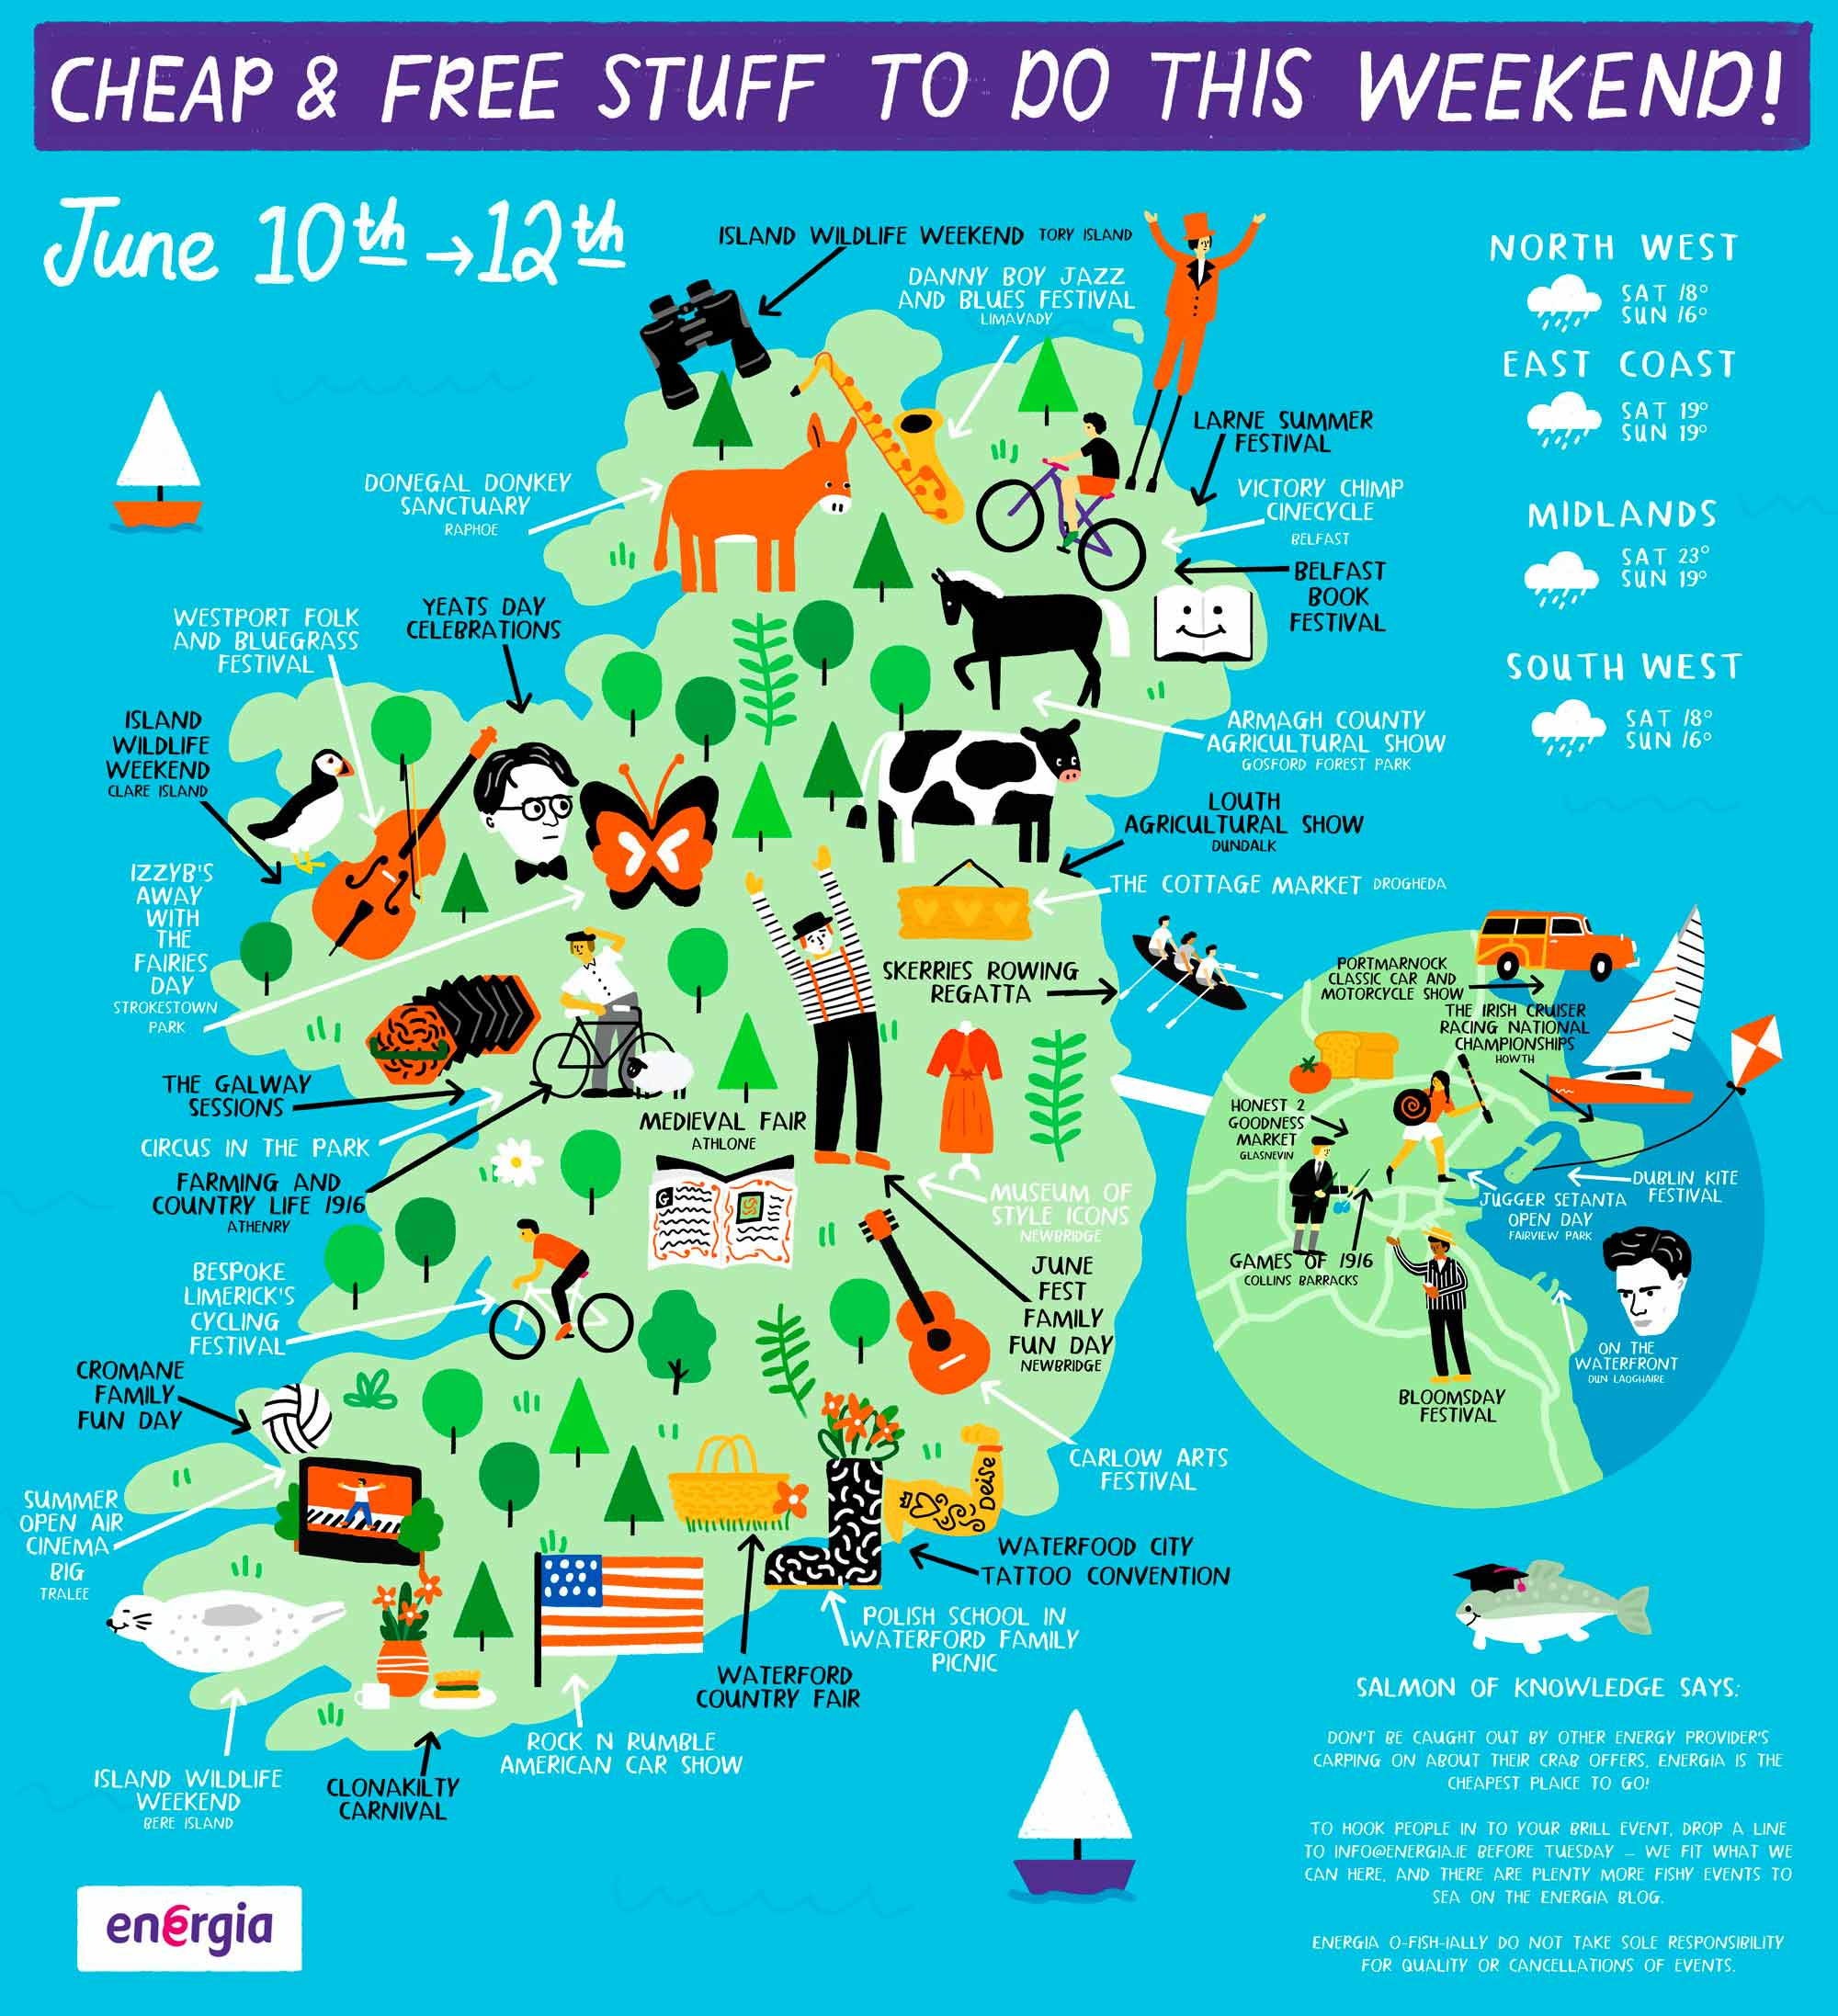 Cheap & Free stuff to do this weekend 10th - 12th June